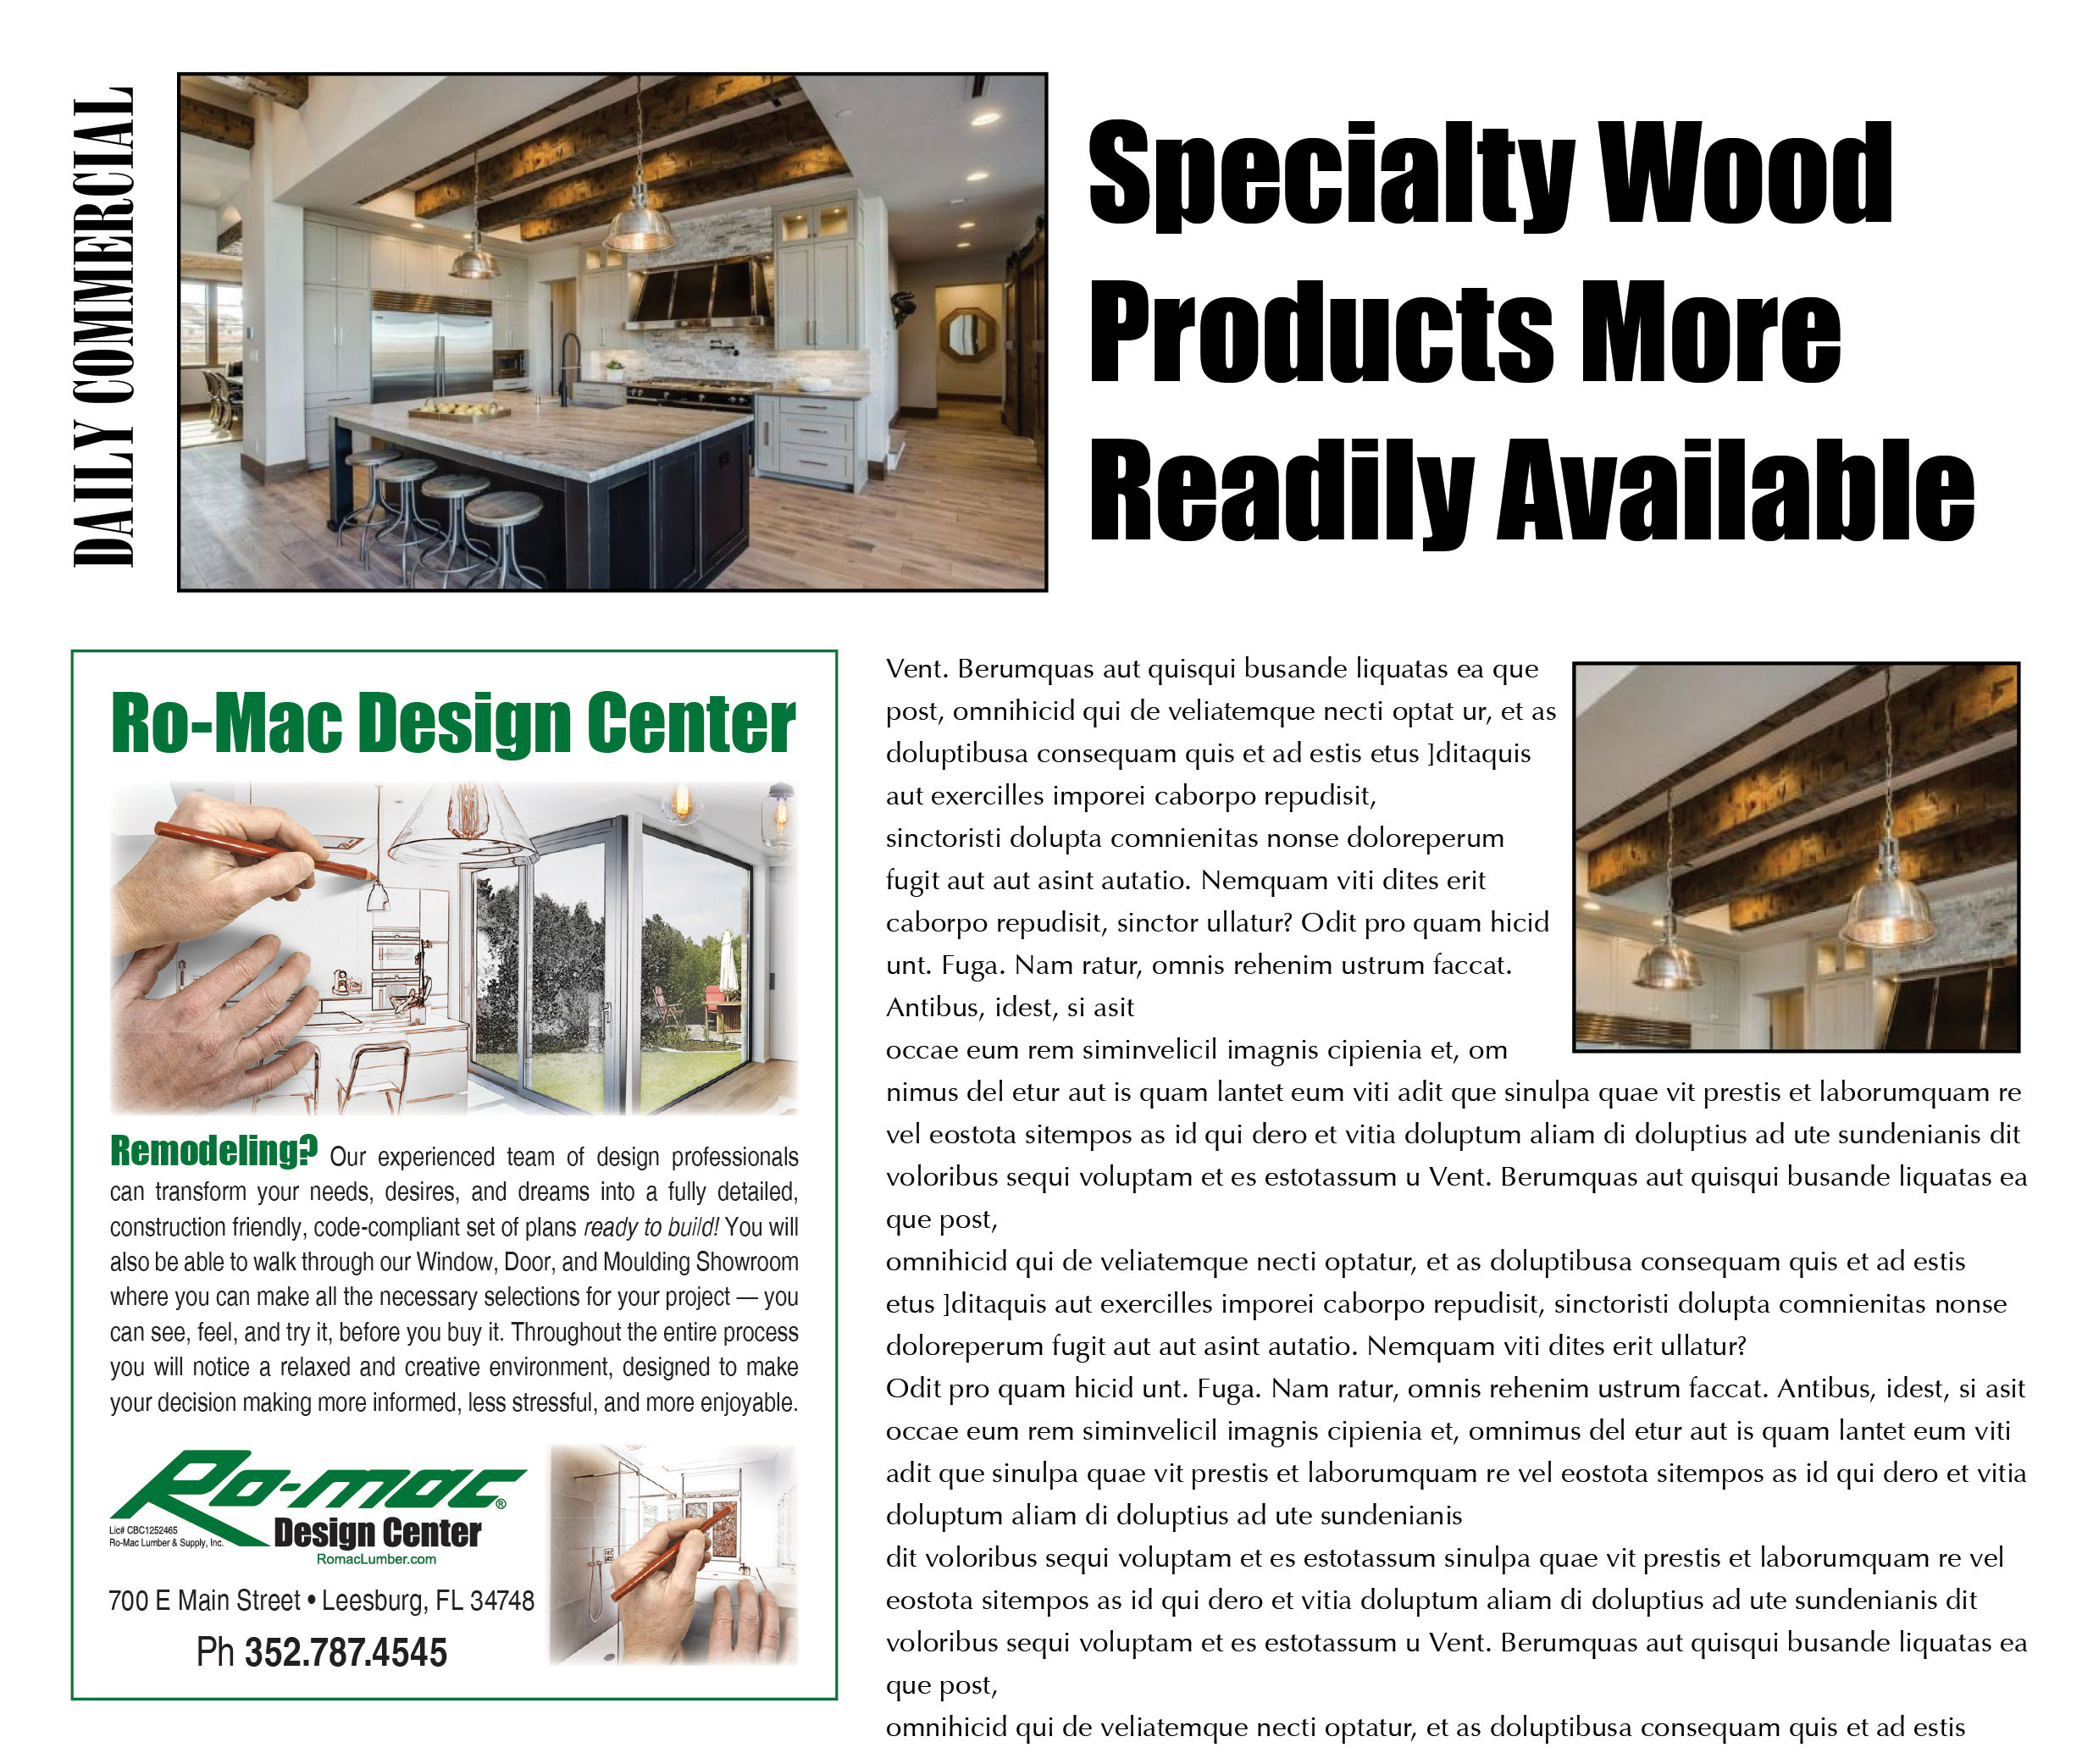 18-10-06 SpecialtyWoodProducts